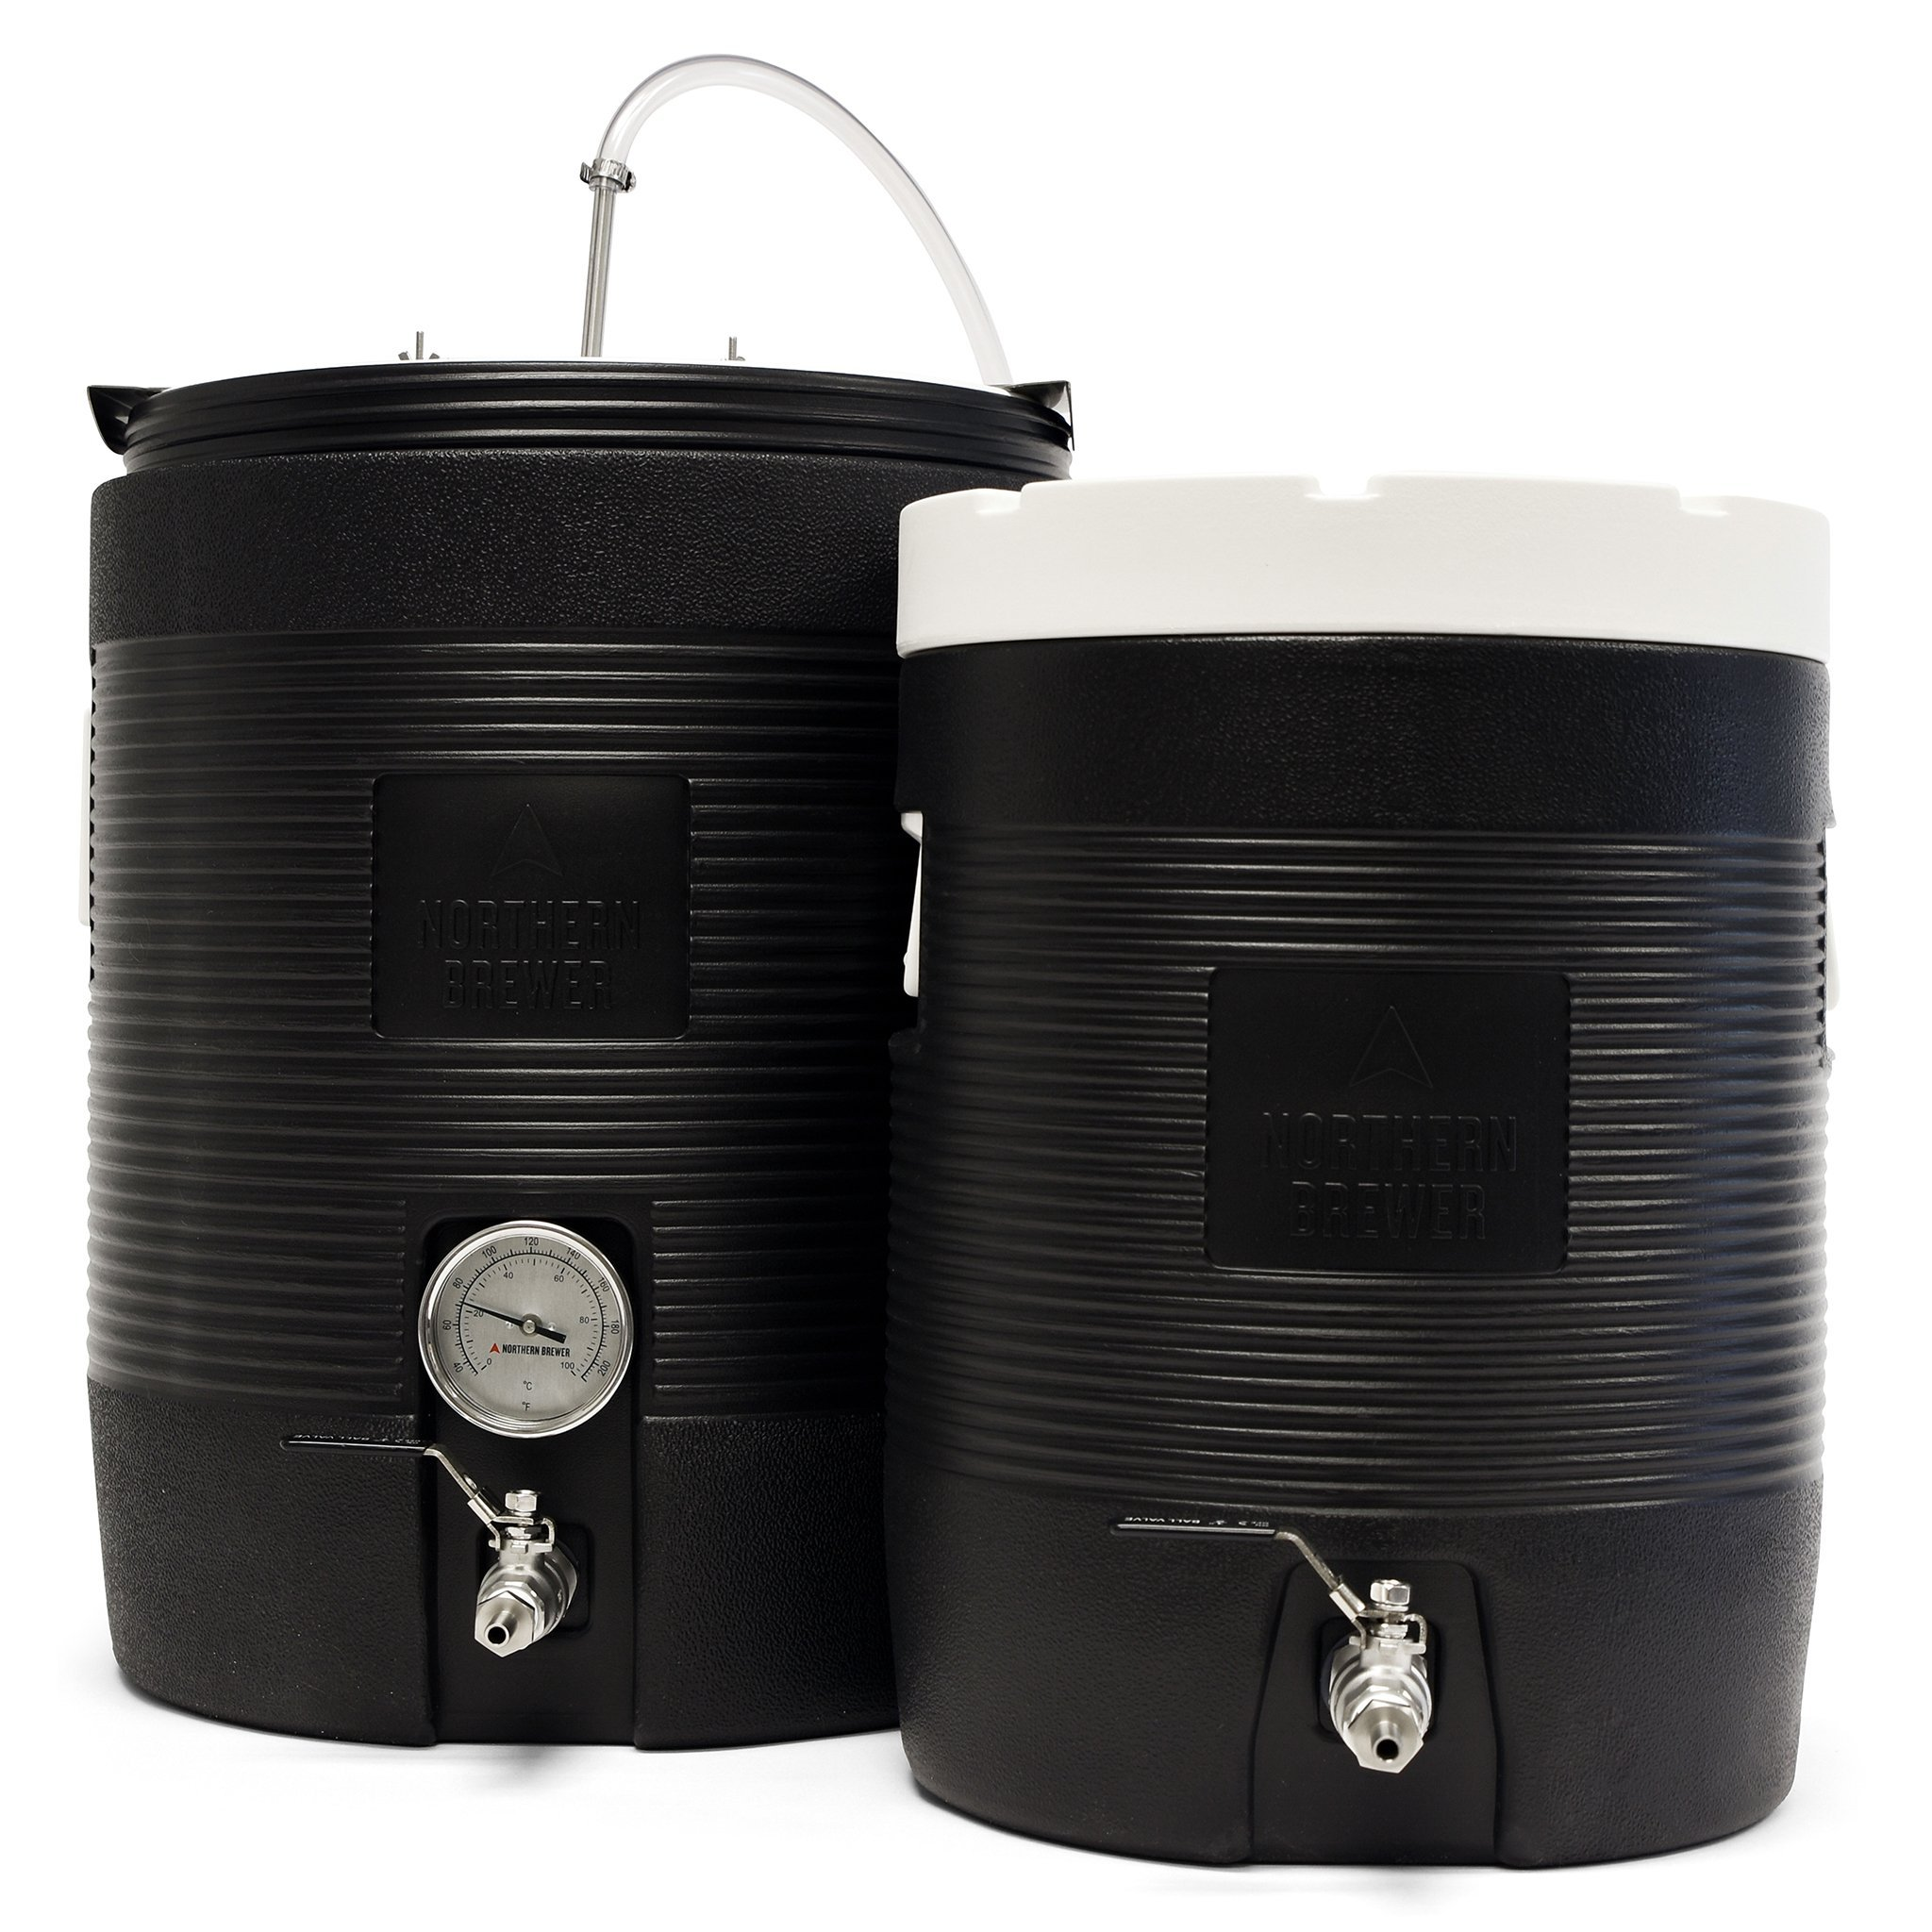 Image of Northern Brewer All Grain Cooler System